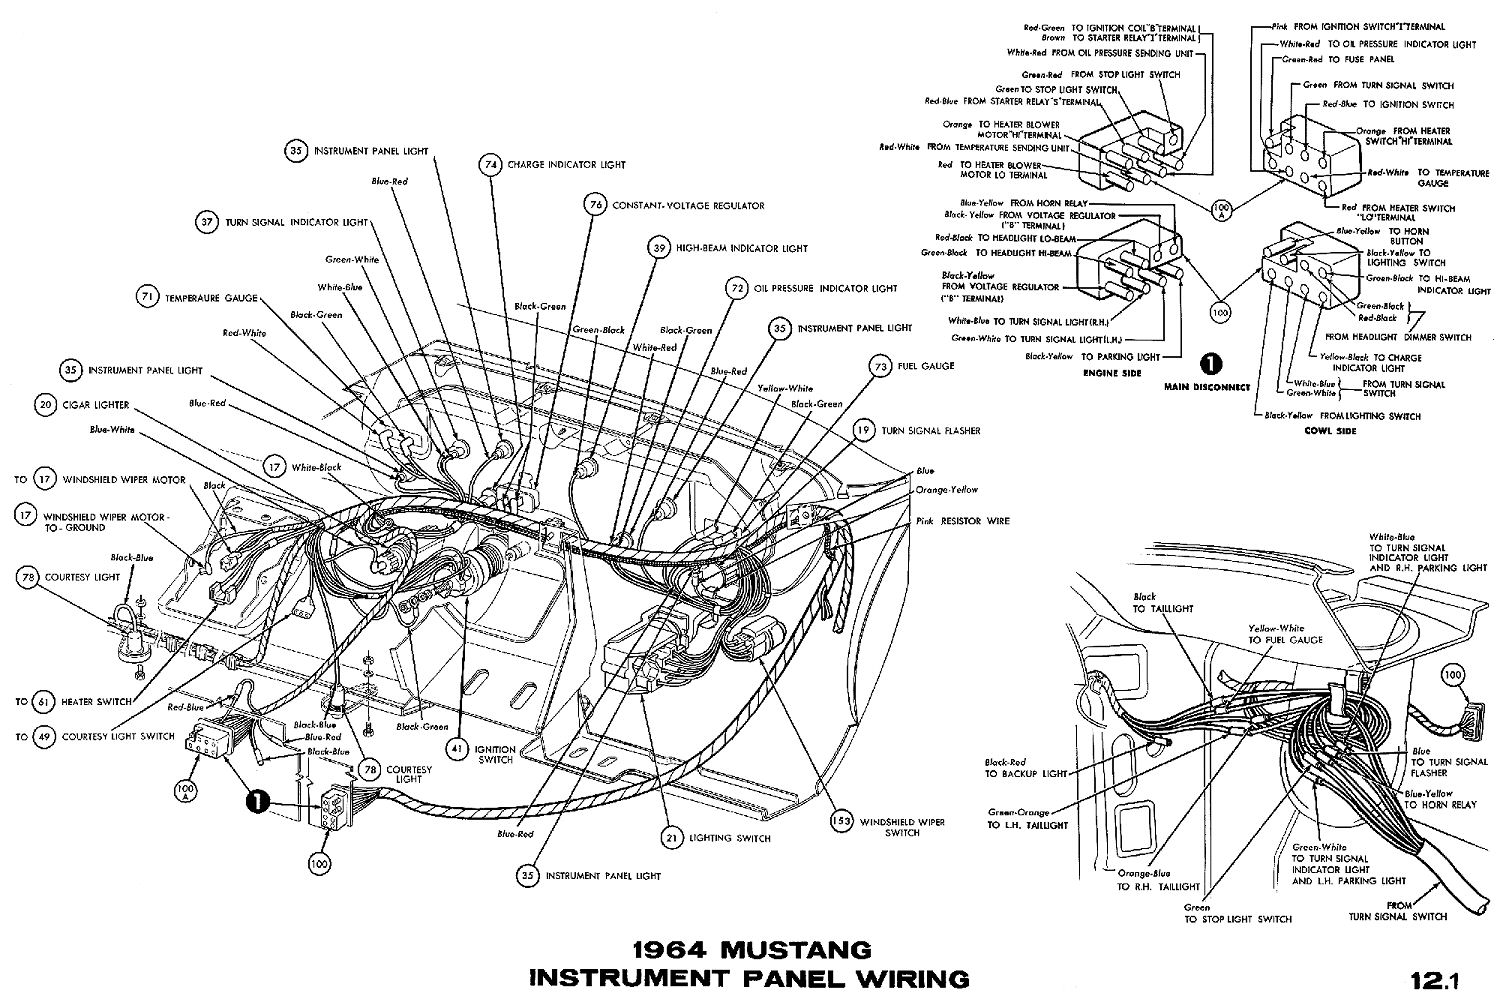 1964 Mustang Wiring Diagrams on 1965 chevy wiring diagram